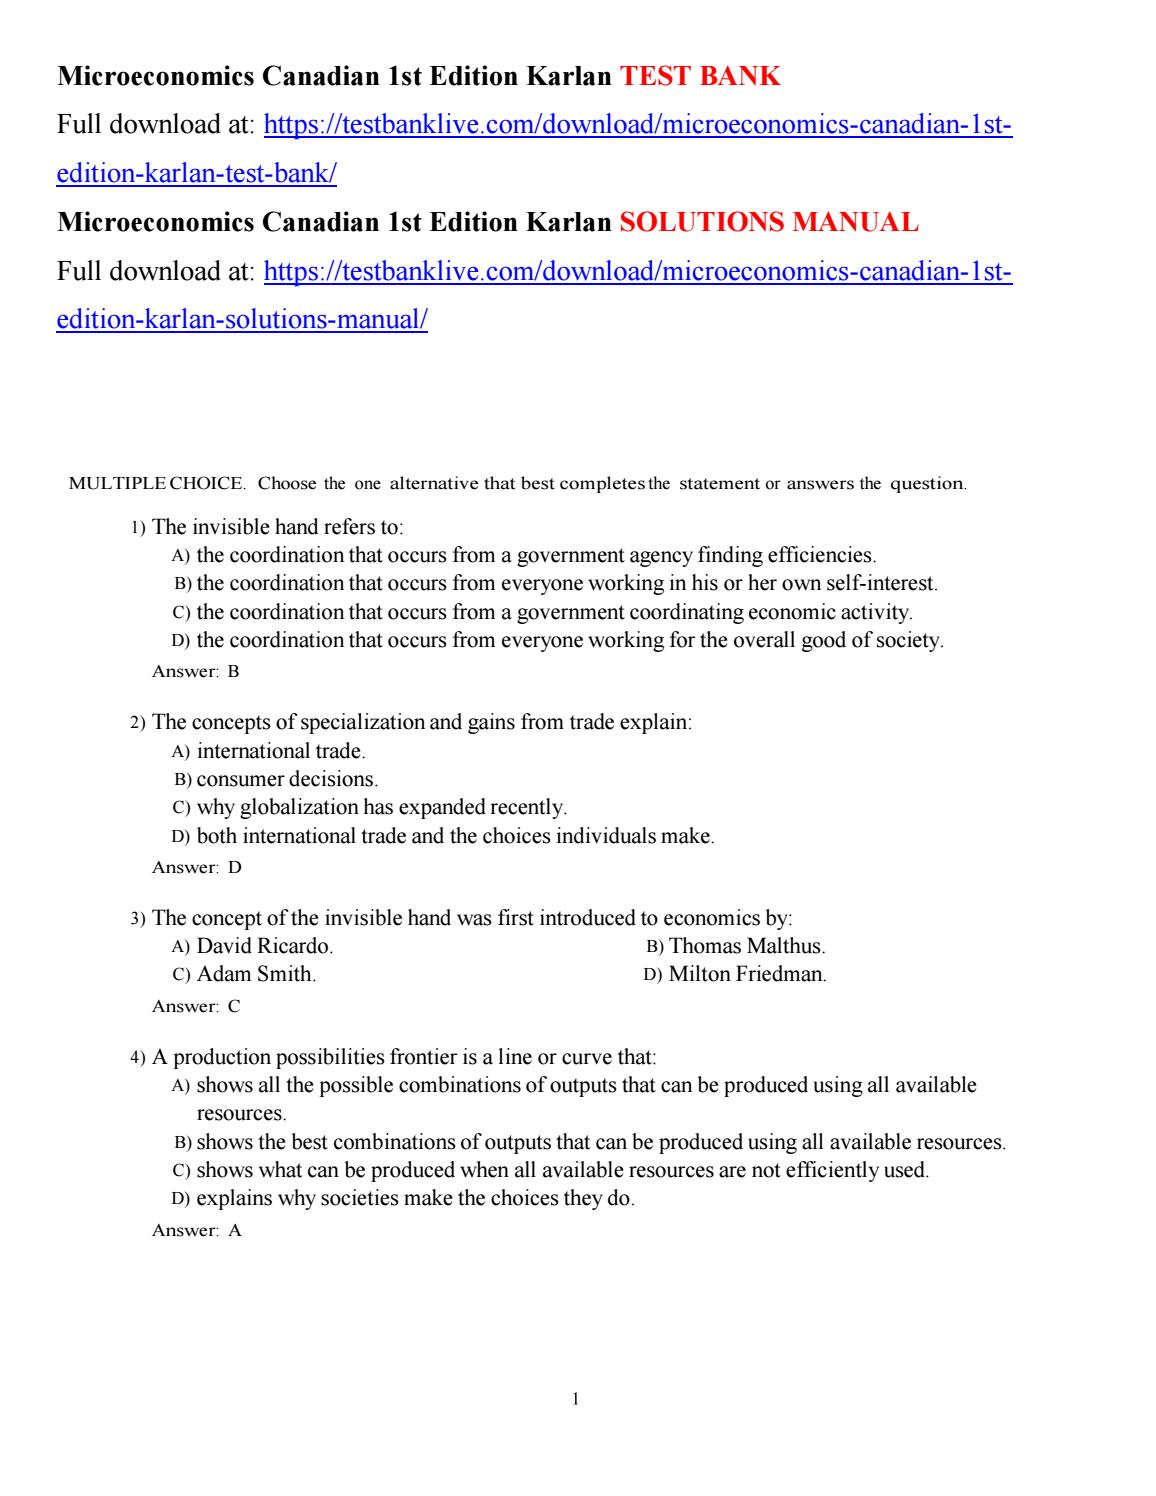 Microeconomics canadian 1st edition karlan test bank by ...